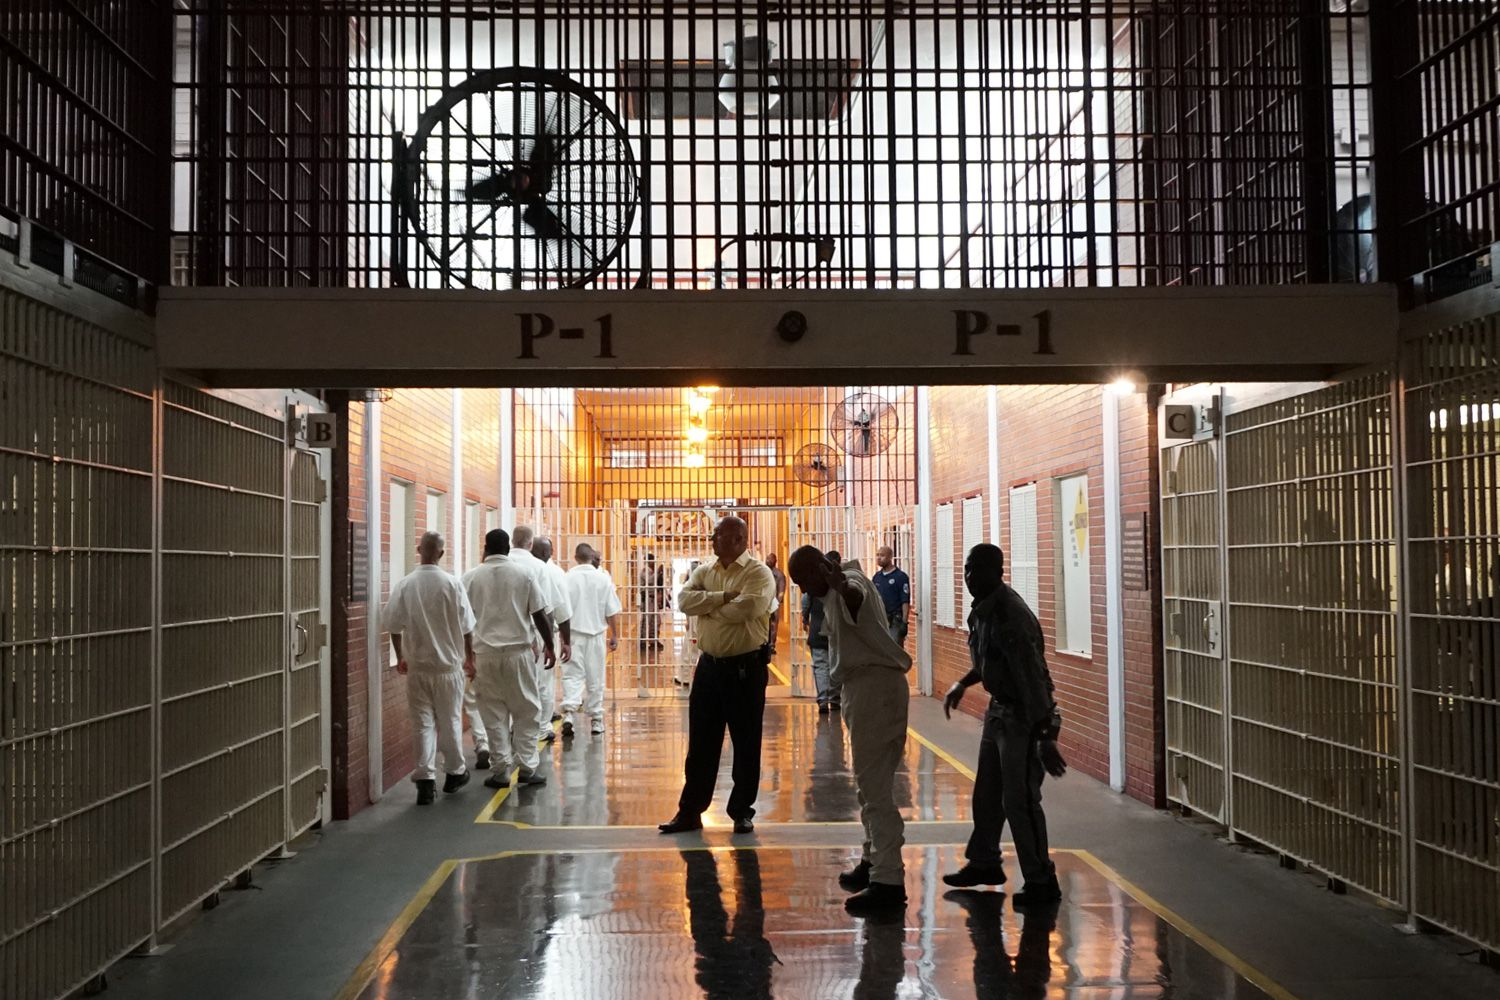 Prison staff and inmates move through the Darrington Unit's main hallway on Wednesday, July 12, 2017.